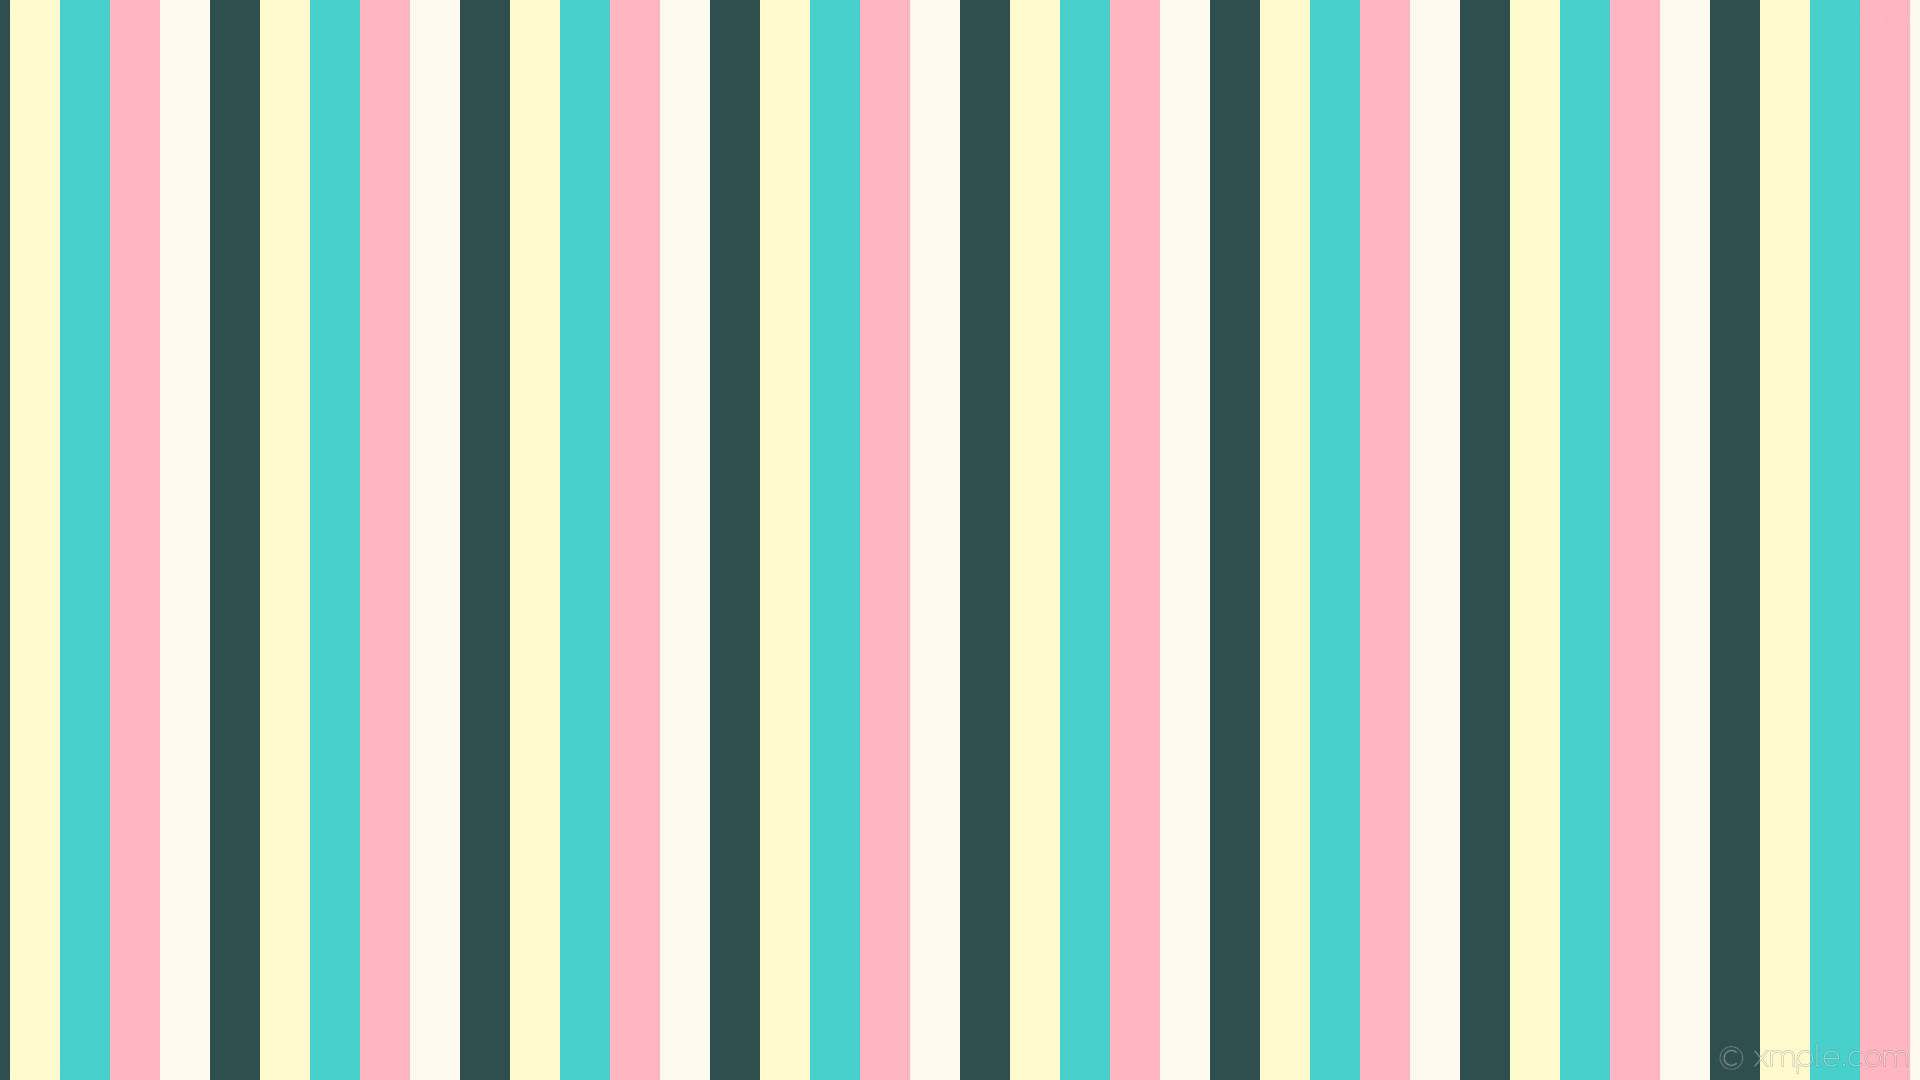 White and Teal Wallpaper 45 images